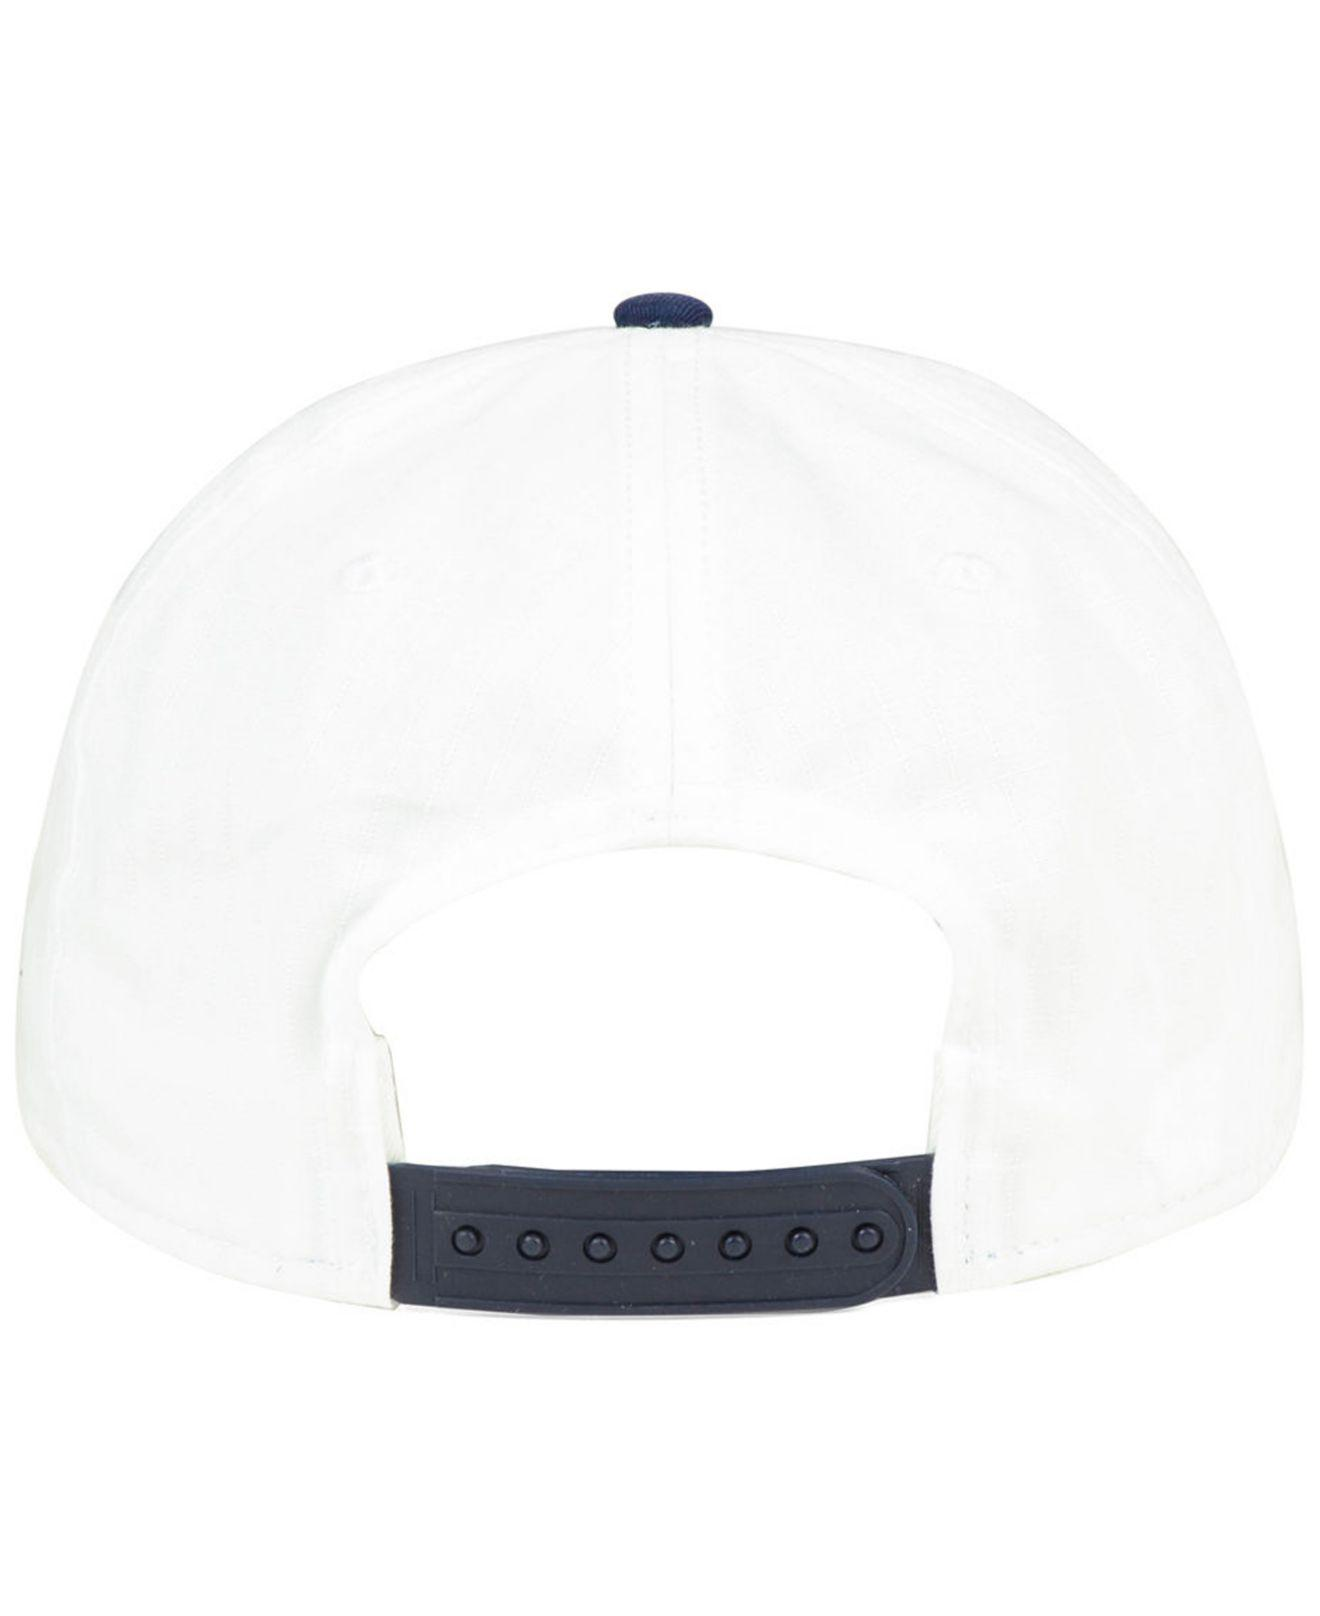 9afbab3b ... discount code for lyst nike cleveland indians white ripstop snapback cap  in white 0f1f6 3aa8b